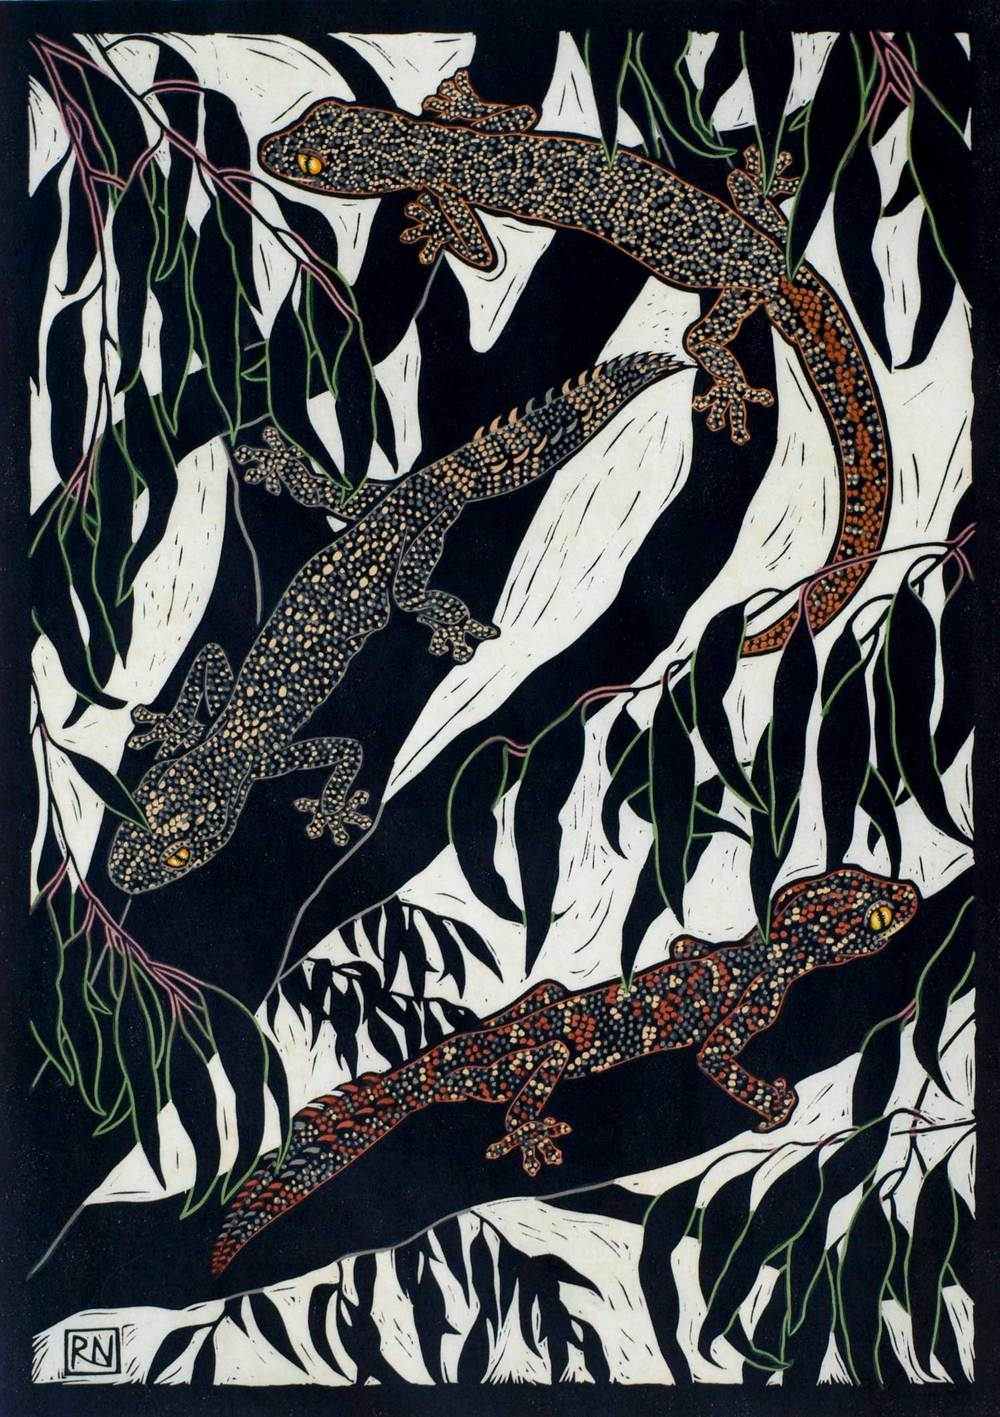 GECKOS  49 X 35.5 CM    EDITION OF 50  HAND COLOURED LINOCUT ON HANDMADE JAPANESE PAPER  $1,050